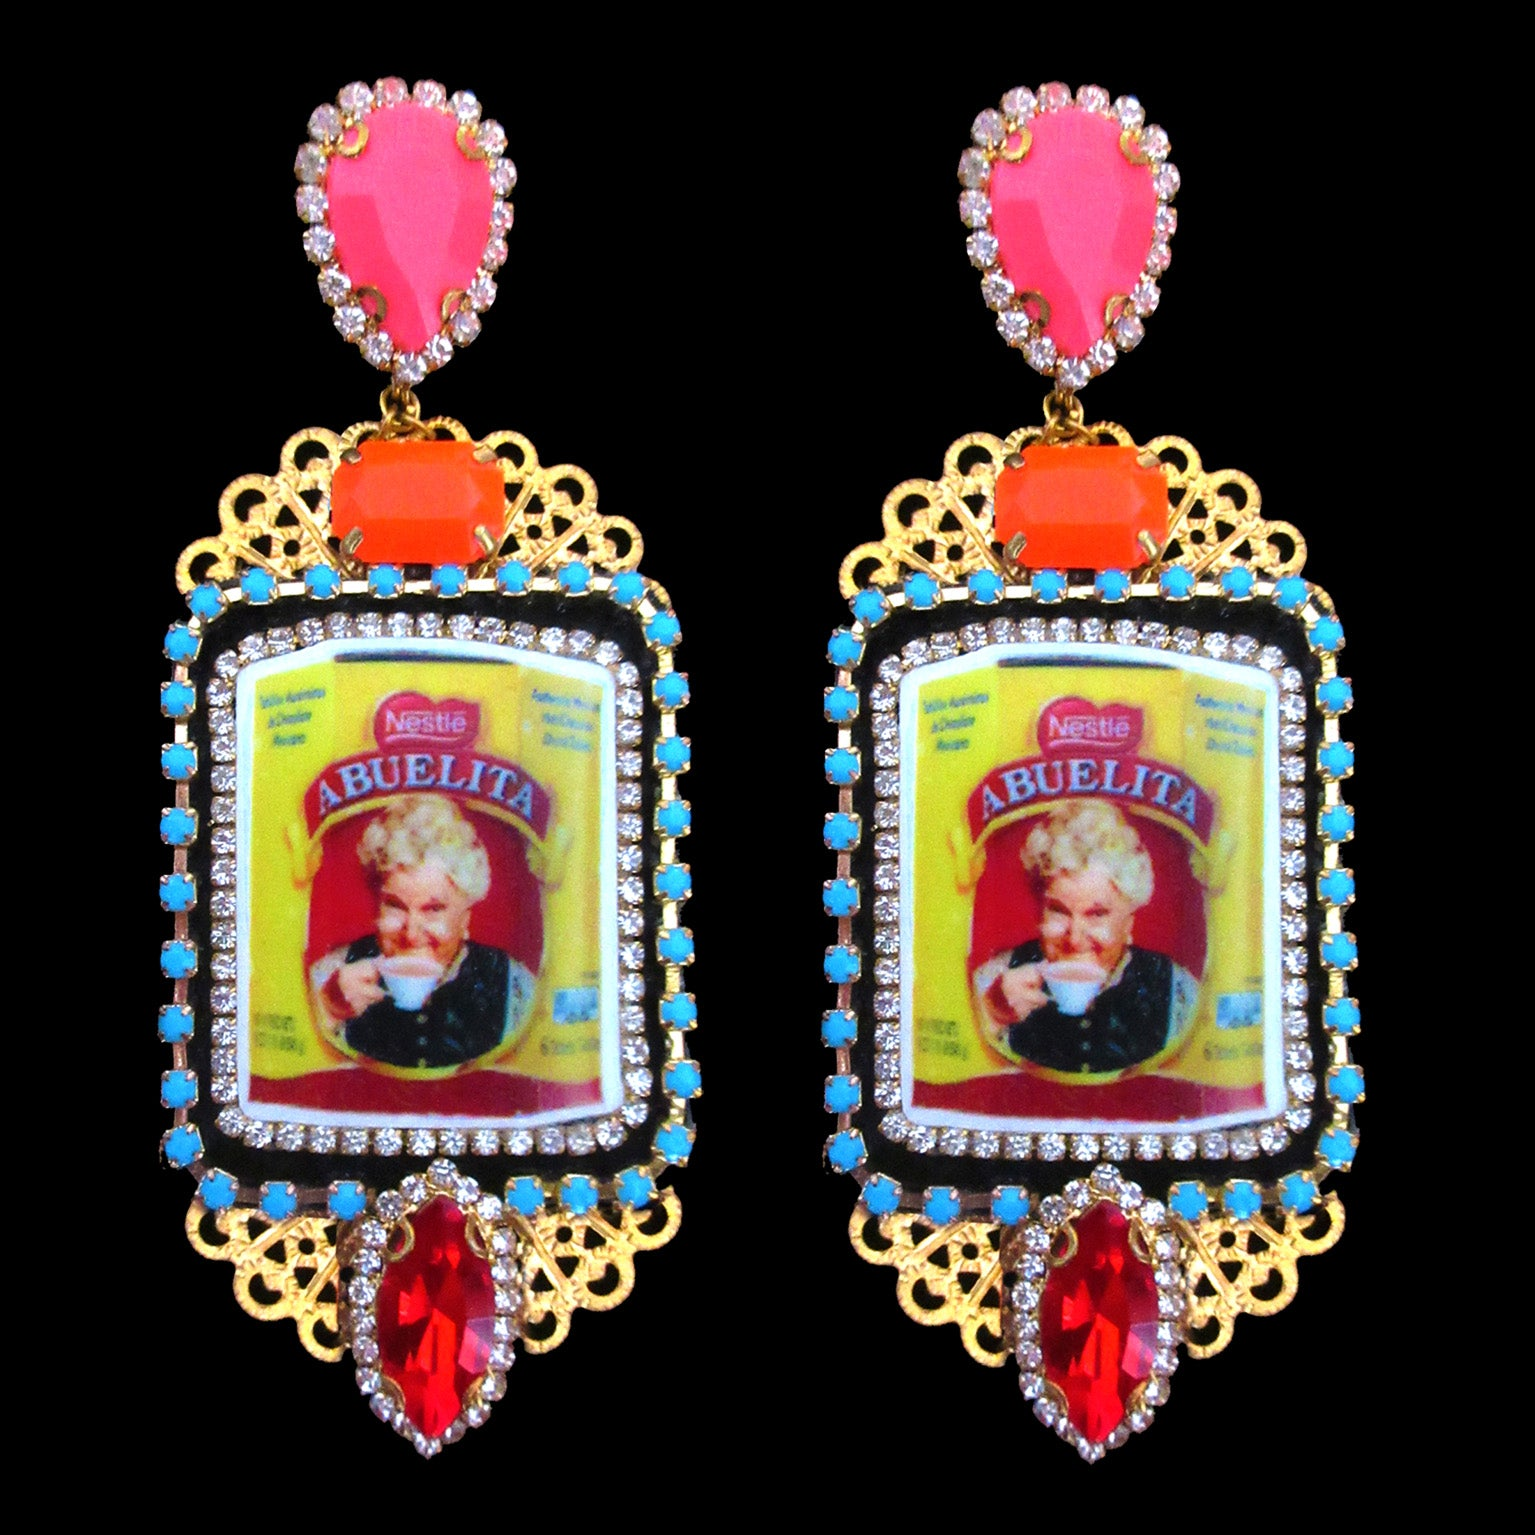 mouchkine jewelry handmade earrings, an abuelita chic picture with red, pink and orange crystals. A luxury haute couture creation.